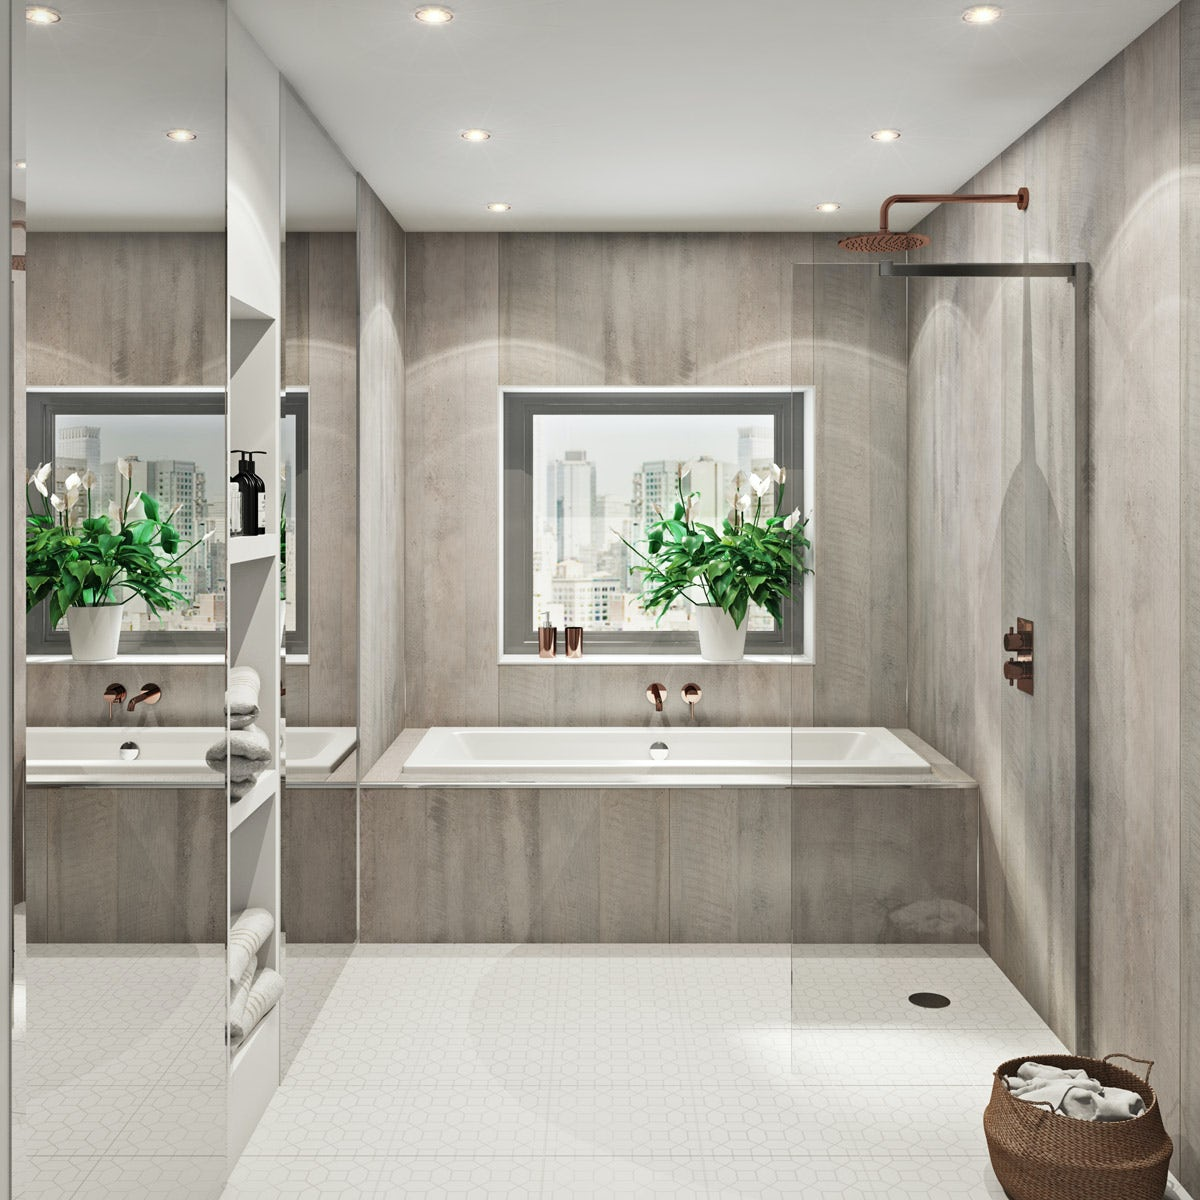 multipanel linda barker concrete formwood hydrolock shower. Black Bedroom Furniture Sets. Home Design Ideas